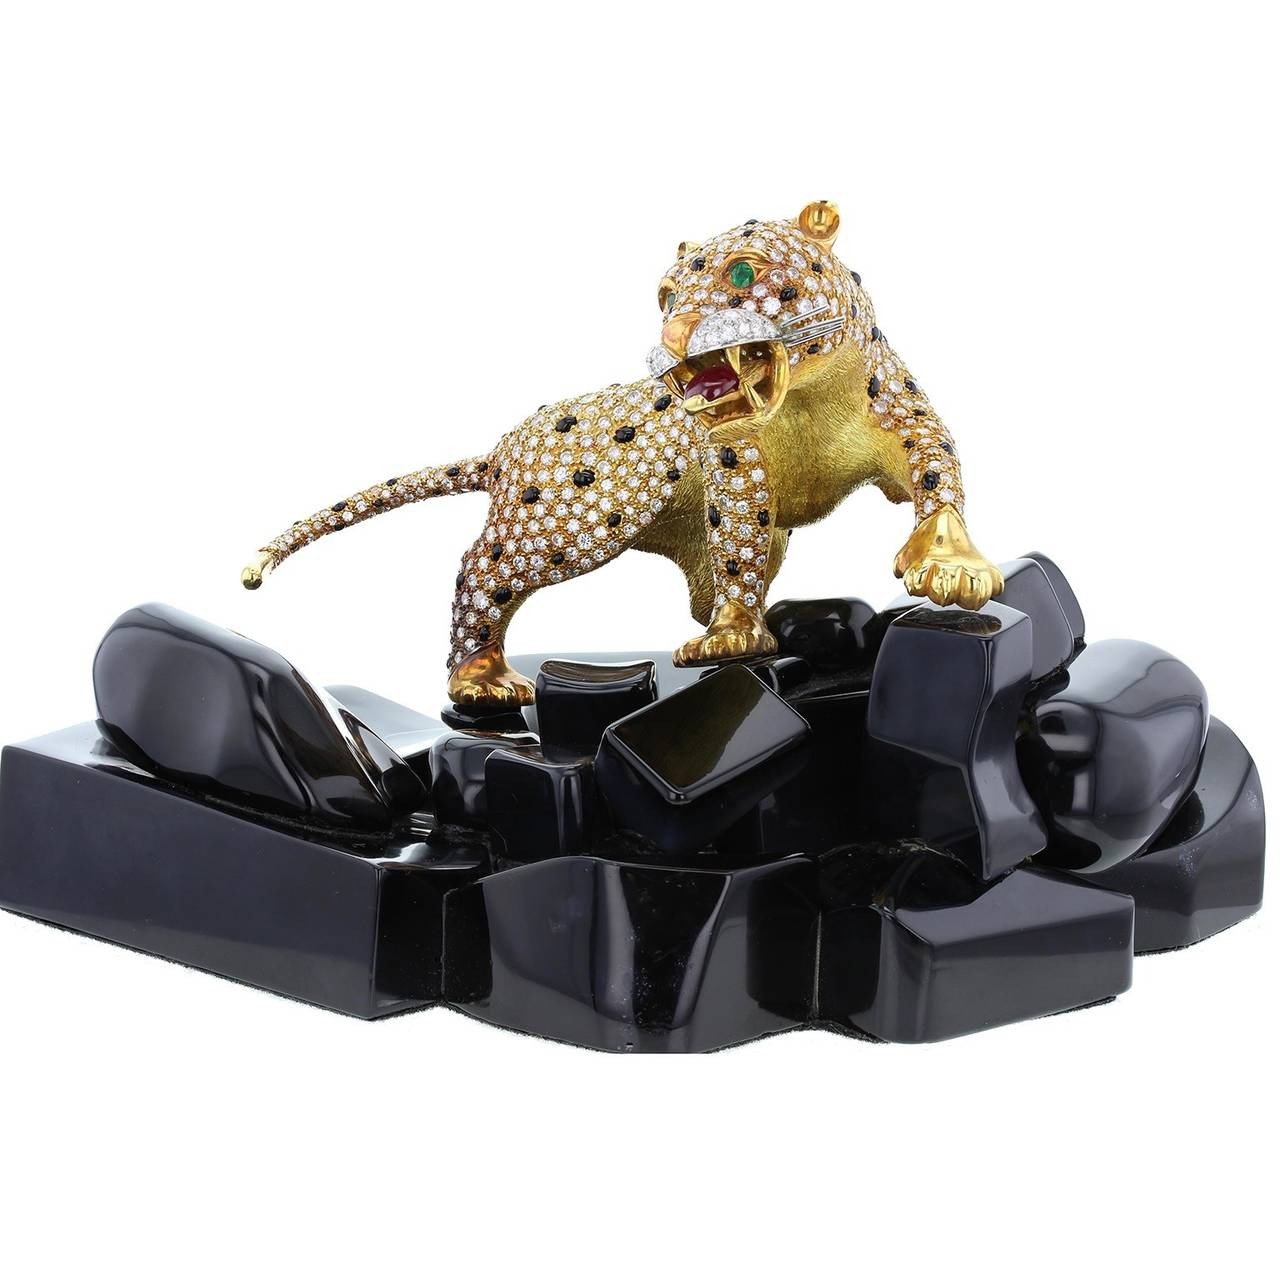 A rare and quality work of art fashioned from 18 carat gold, diamonds, rubies, emeralds and onyx. Created by a highly skilled jeweller it features a prowling panther with a polished onyx and brilliant-cut diamond set body, with emeralds as eyes and